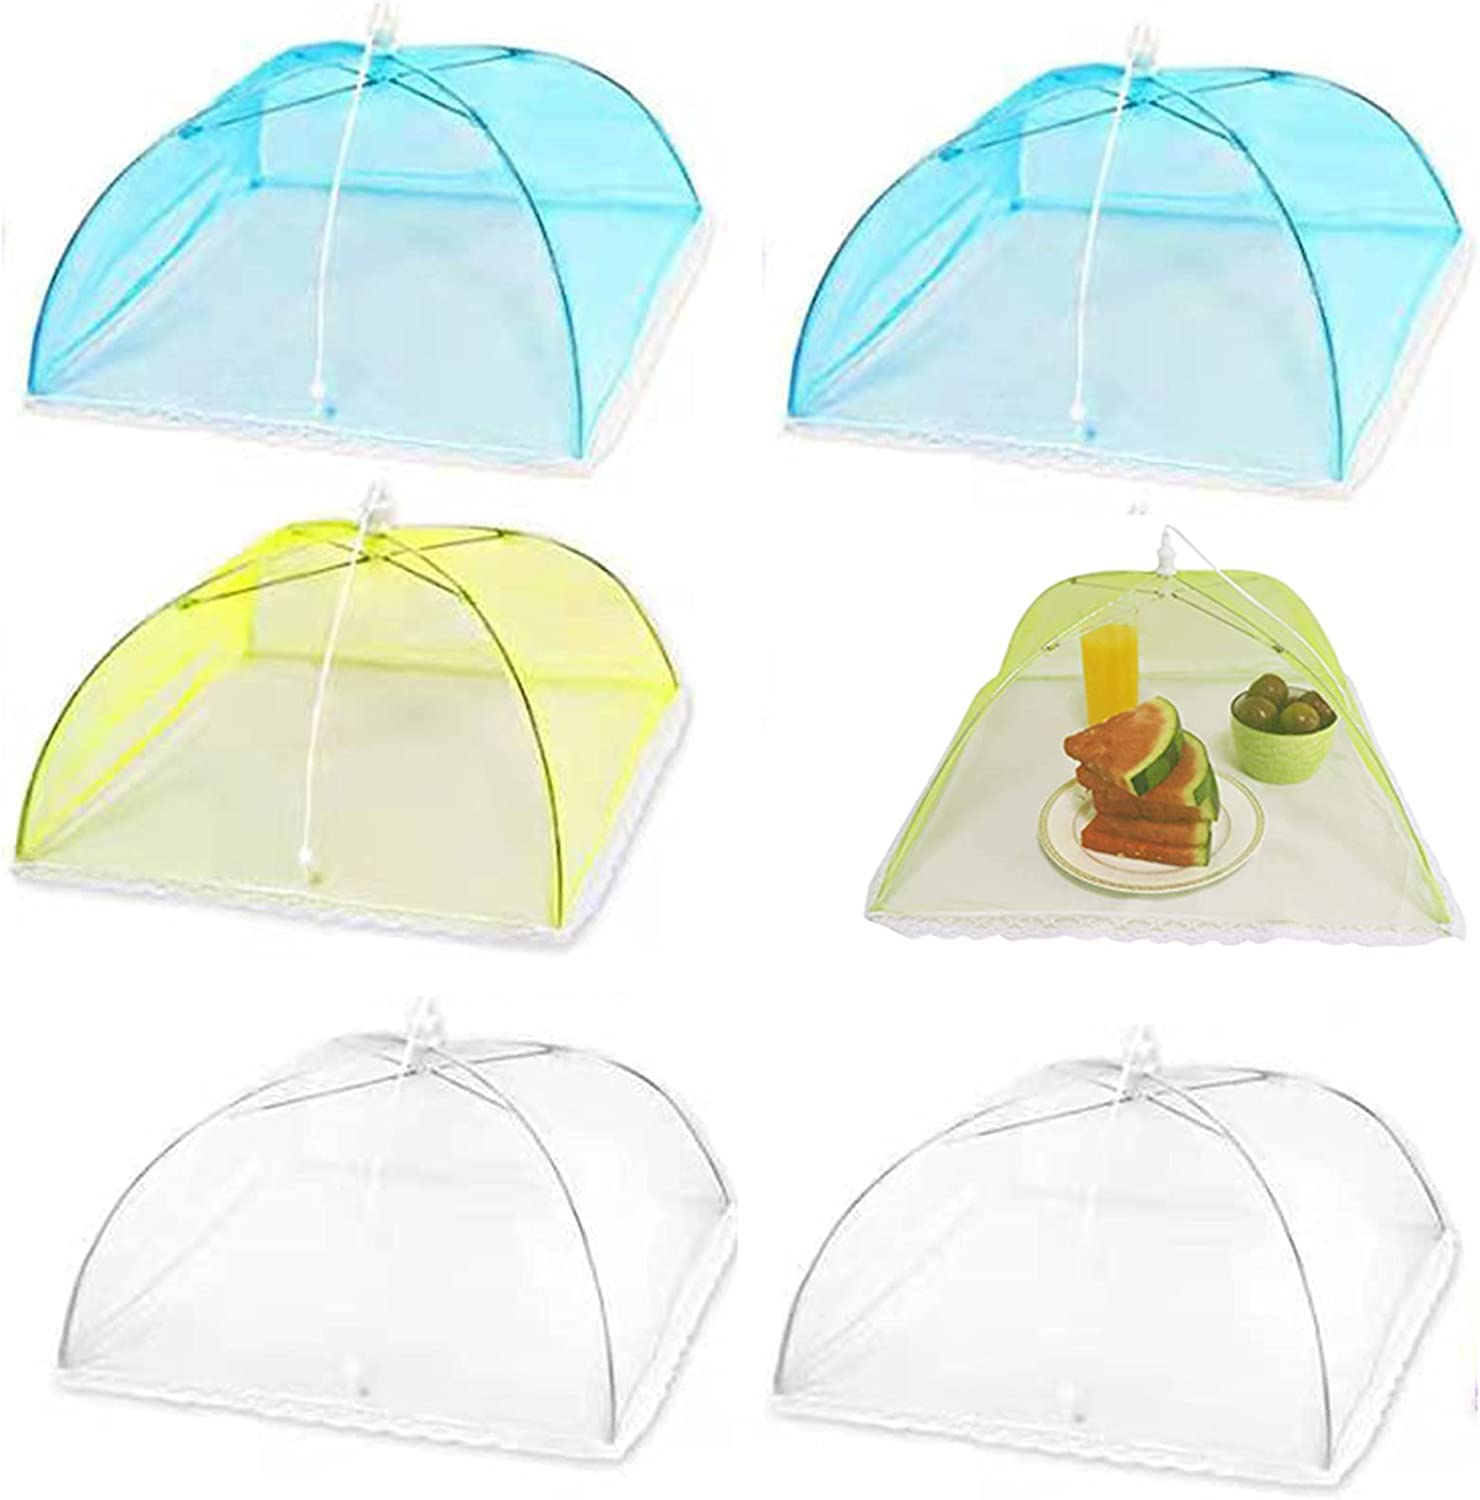 6 Packs Foldable Under blast sales Mesh Food Nylon Covers Snac Discount is also underway Serving 17